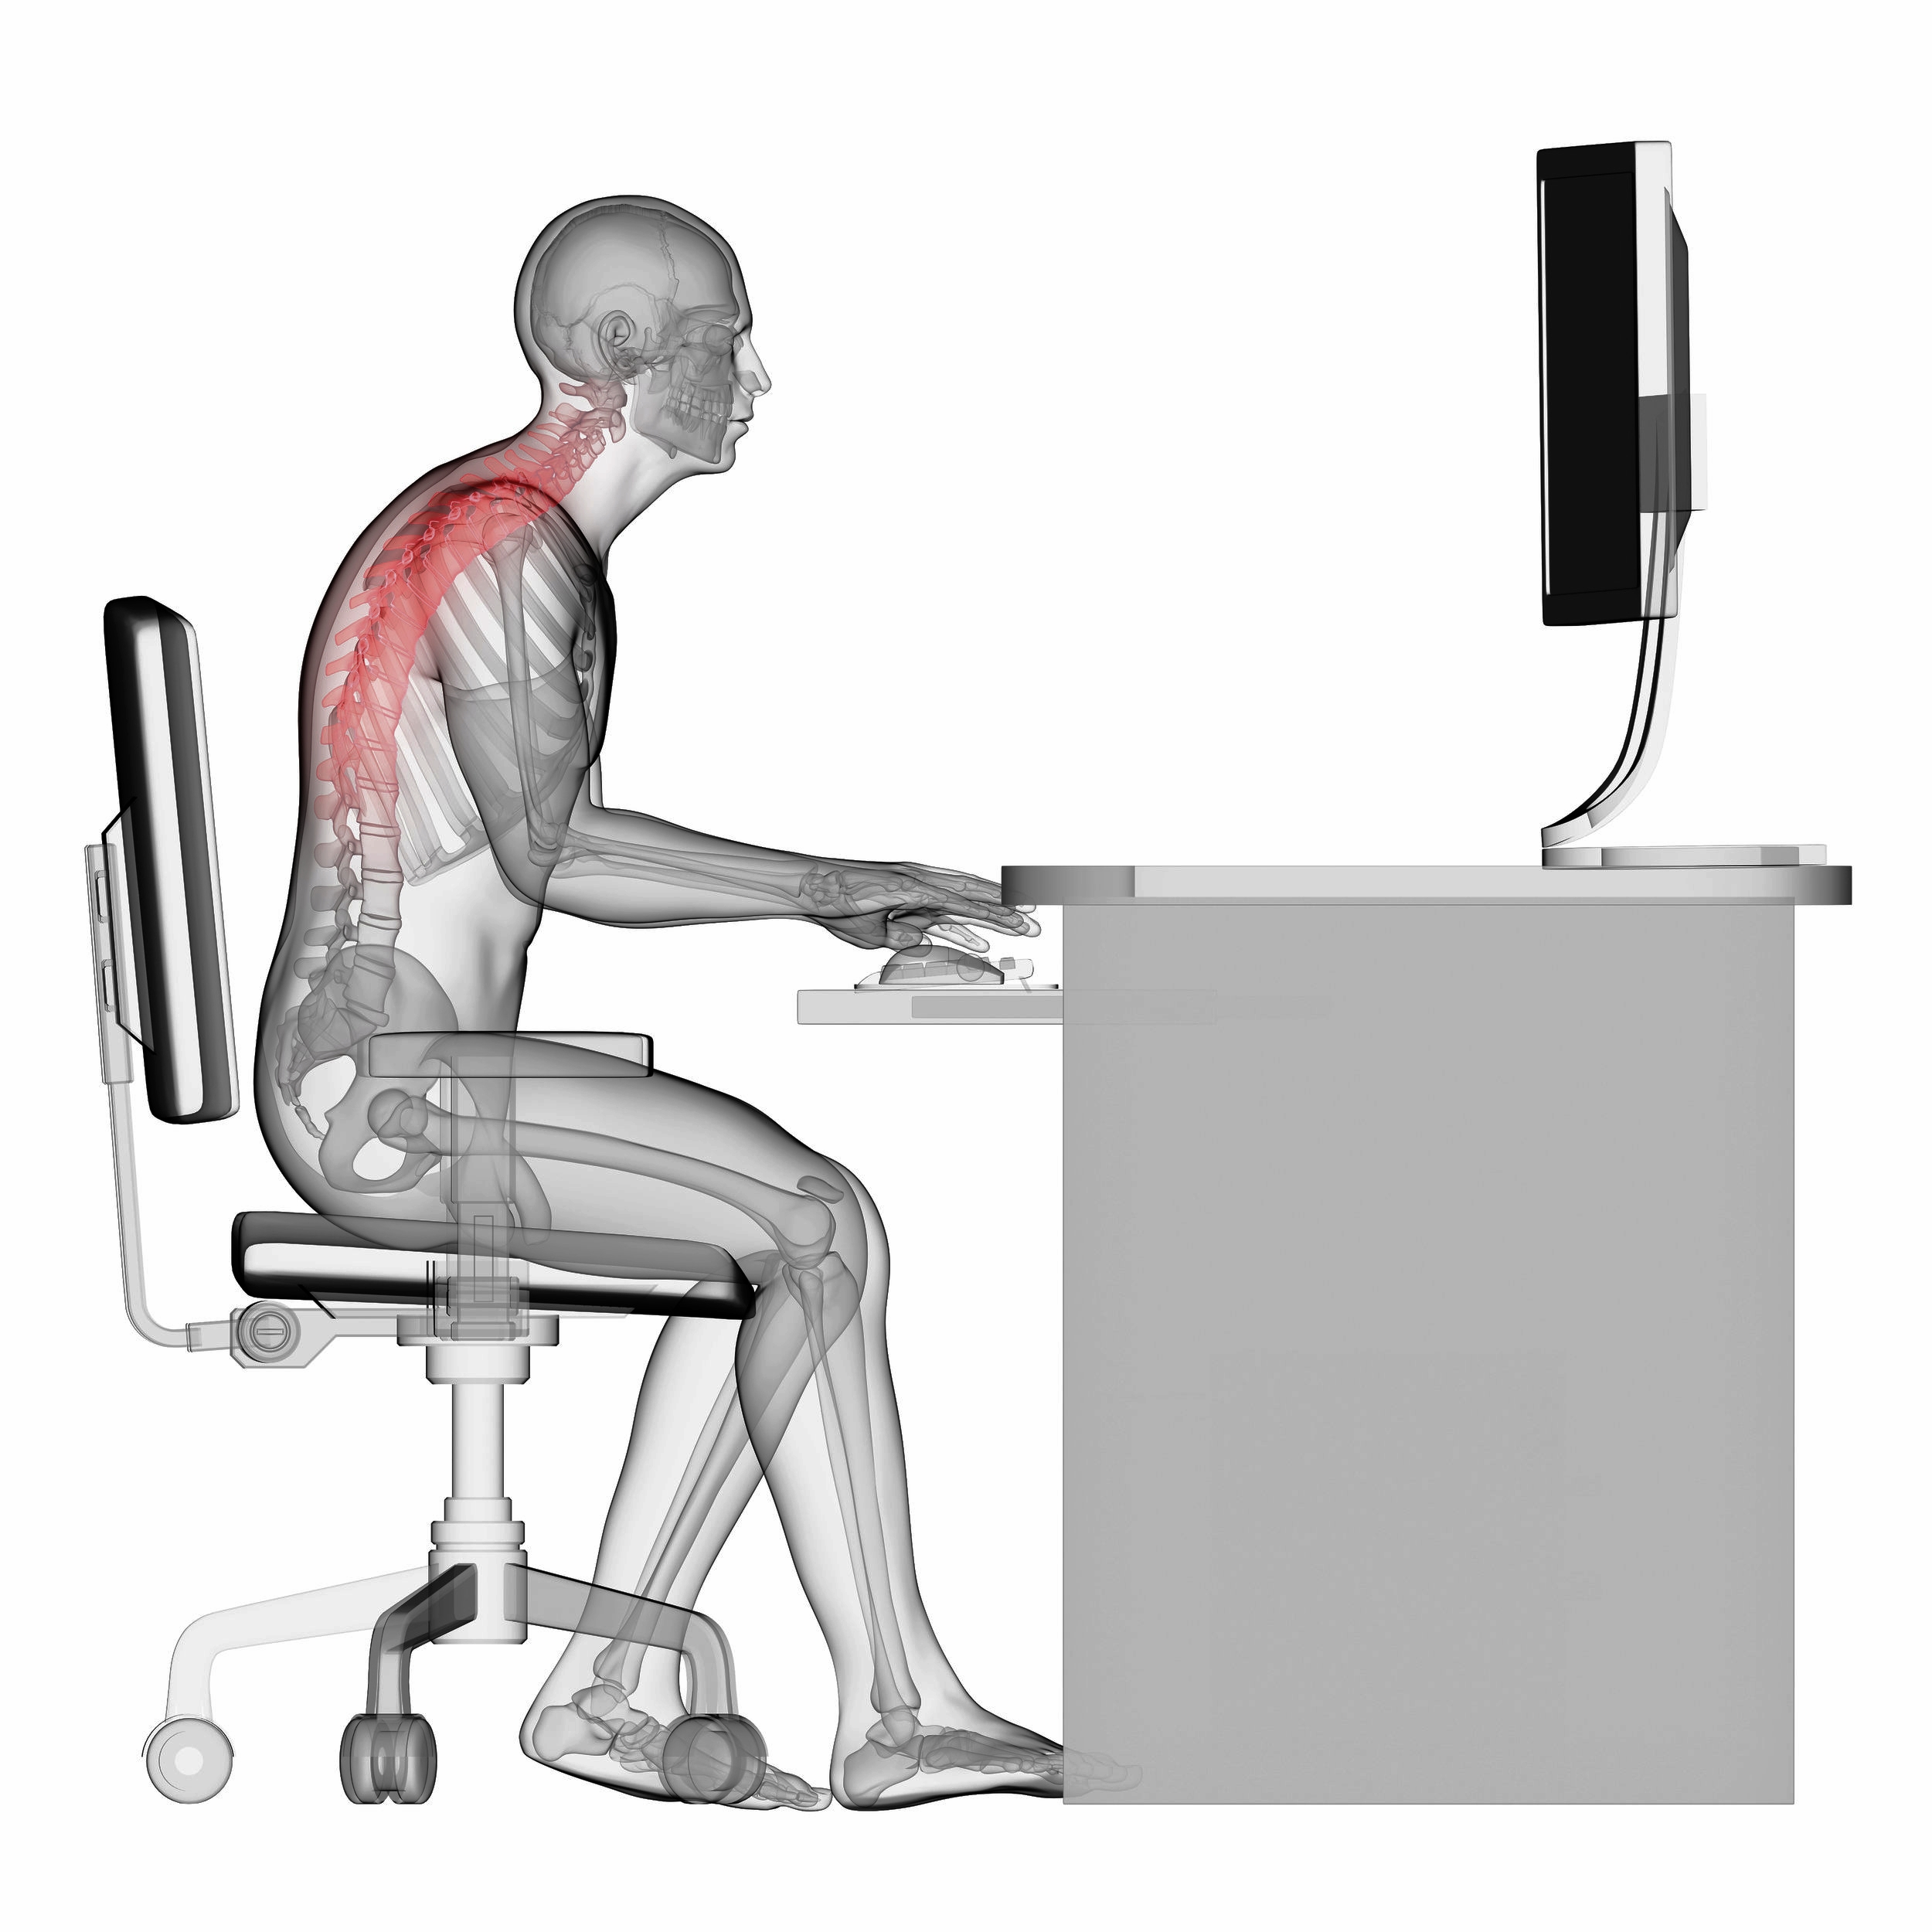 The average Brit spends 9 hours each day sitting -                              That's a big problem.